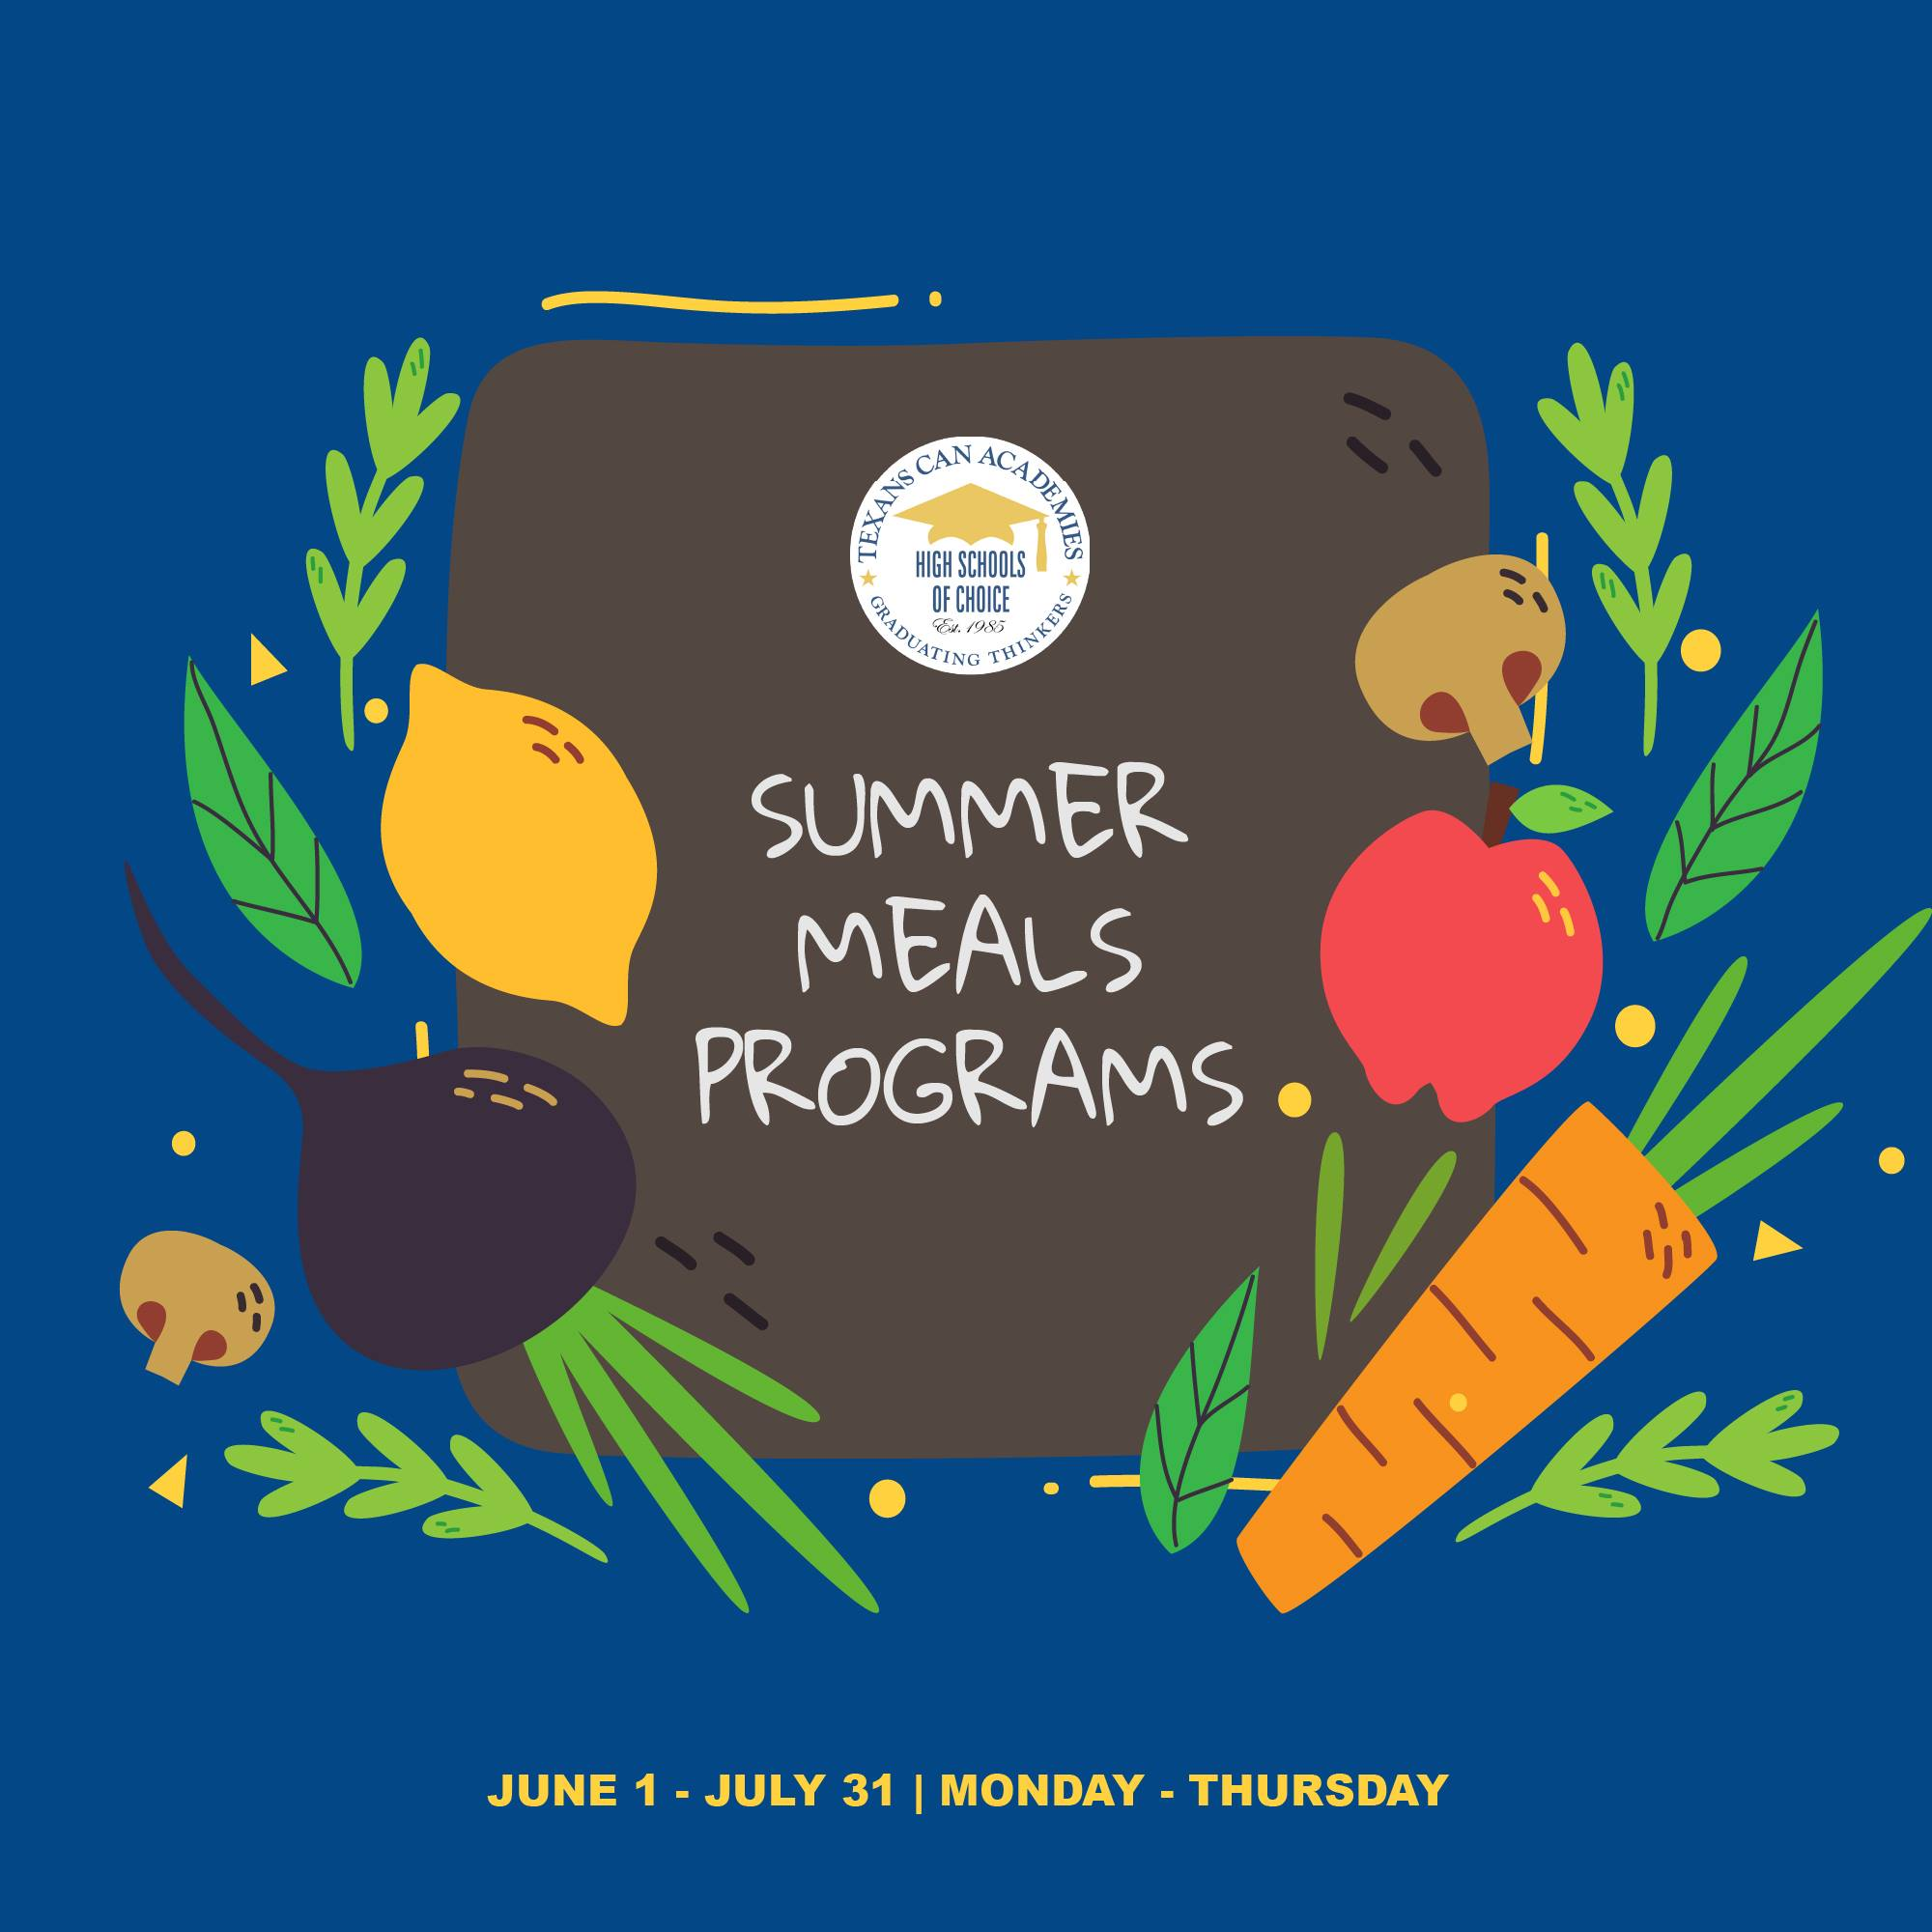 Summer Meals Program at Texans Can Academies